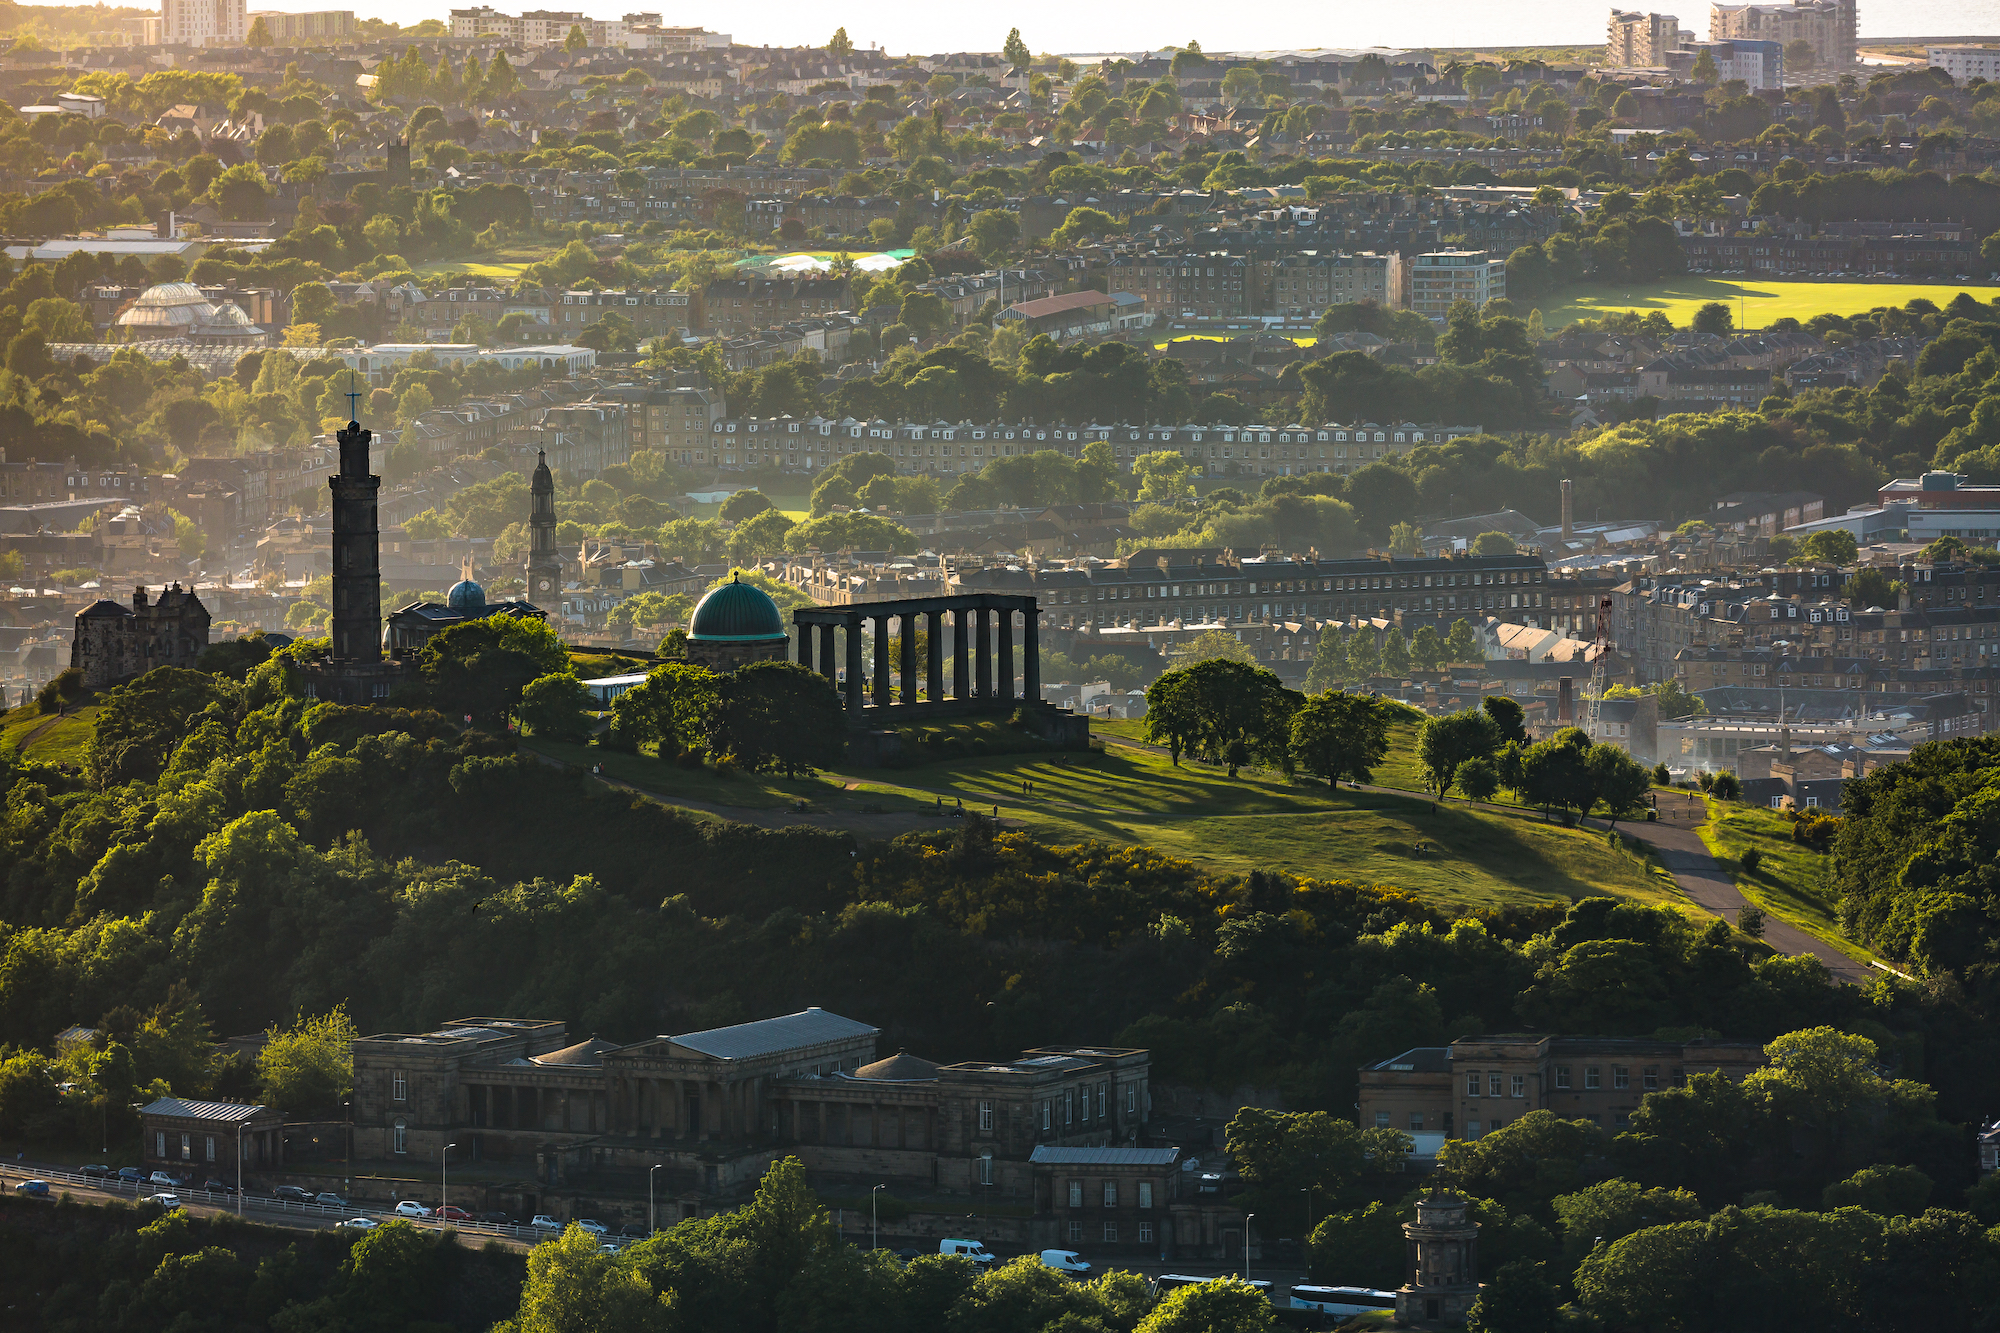 (578) Calton Hill, Old Royal High School, the Nelson Monument, the National Monument and City Observatory to Leith, Edinburgh, Scotland.jpg